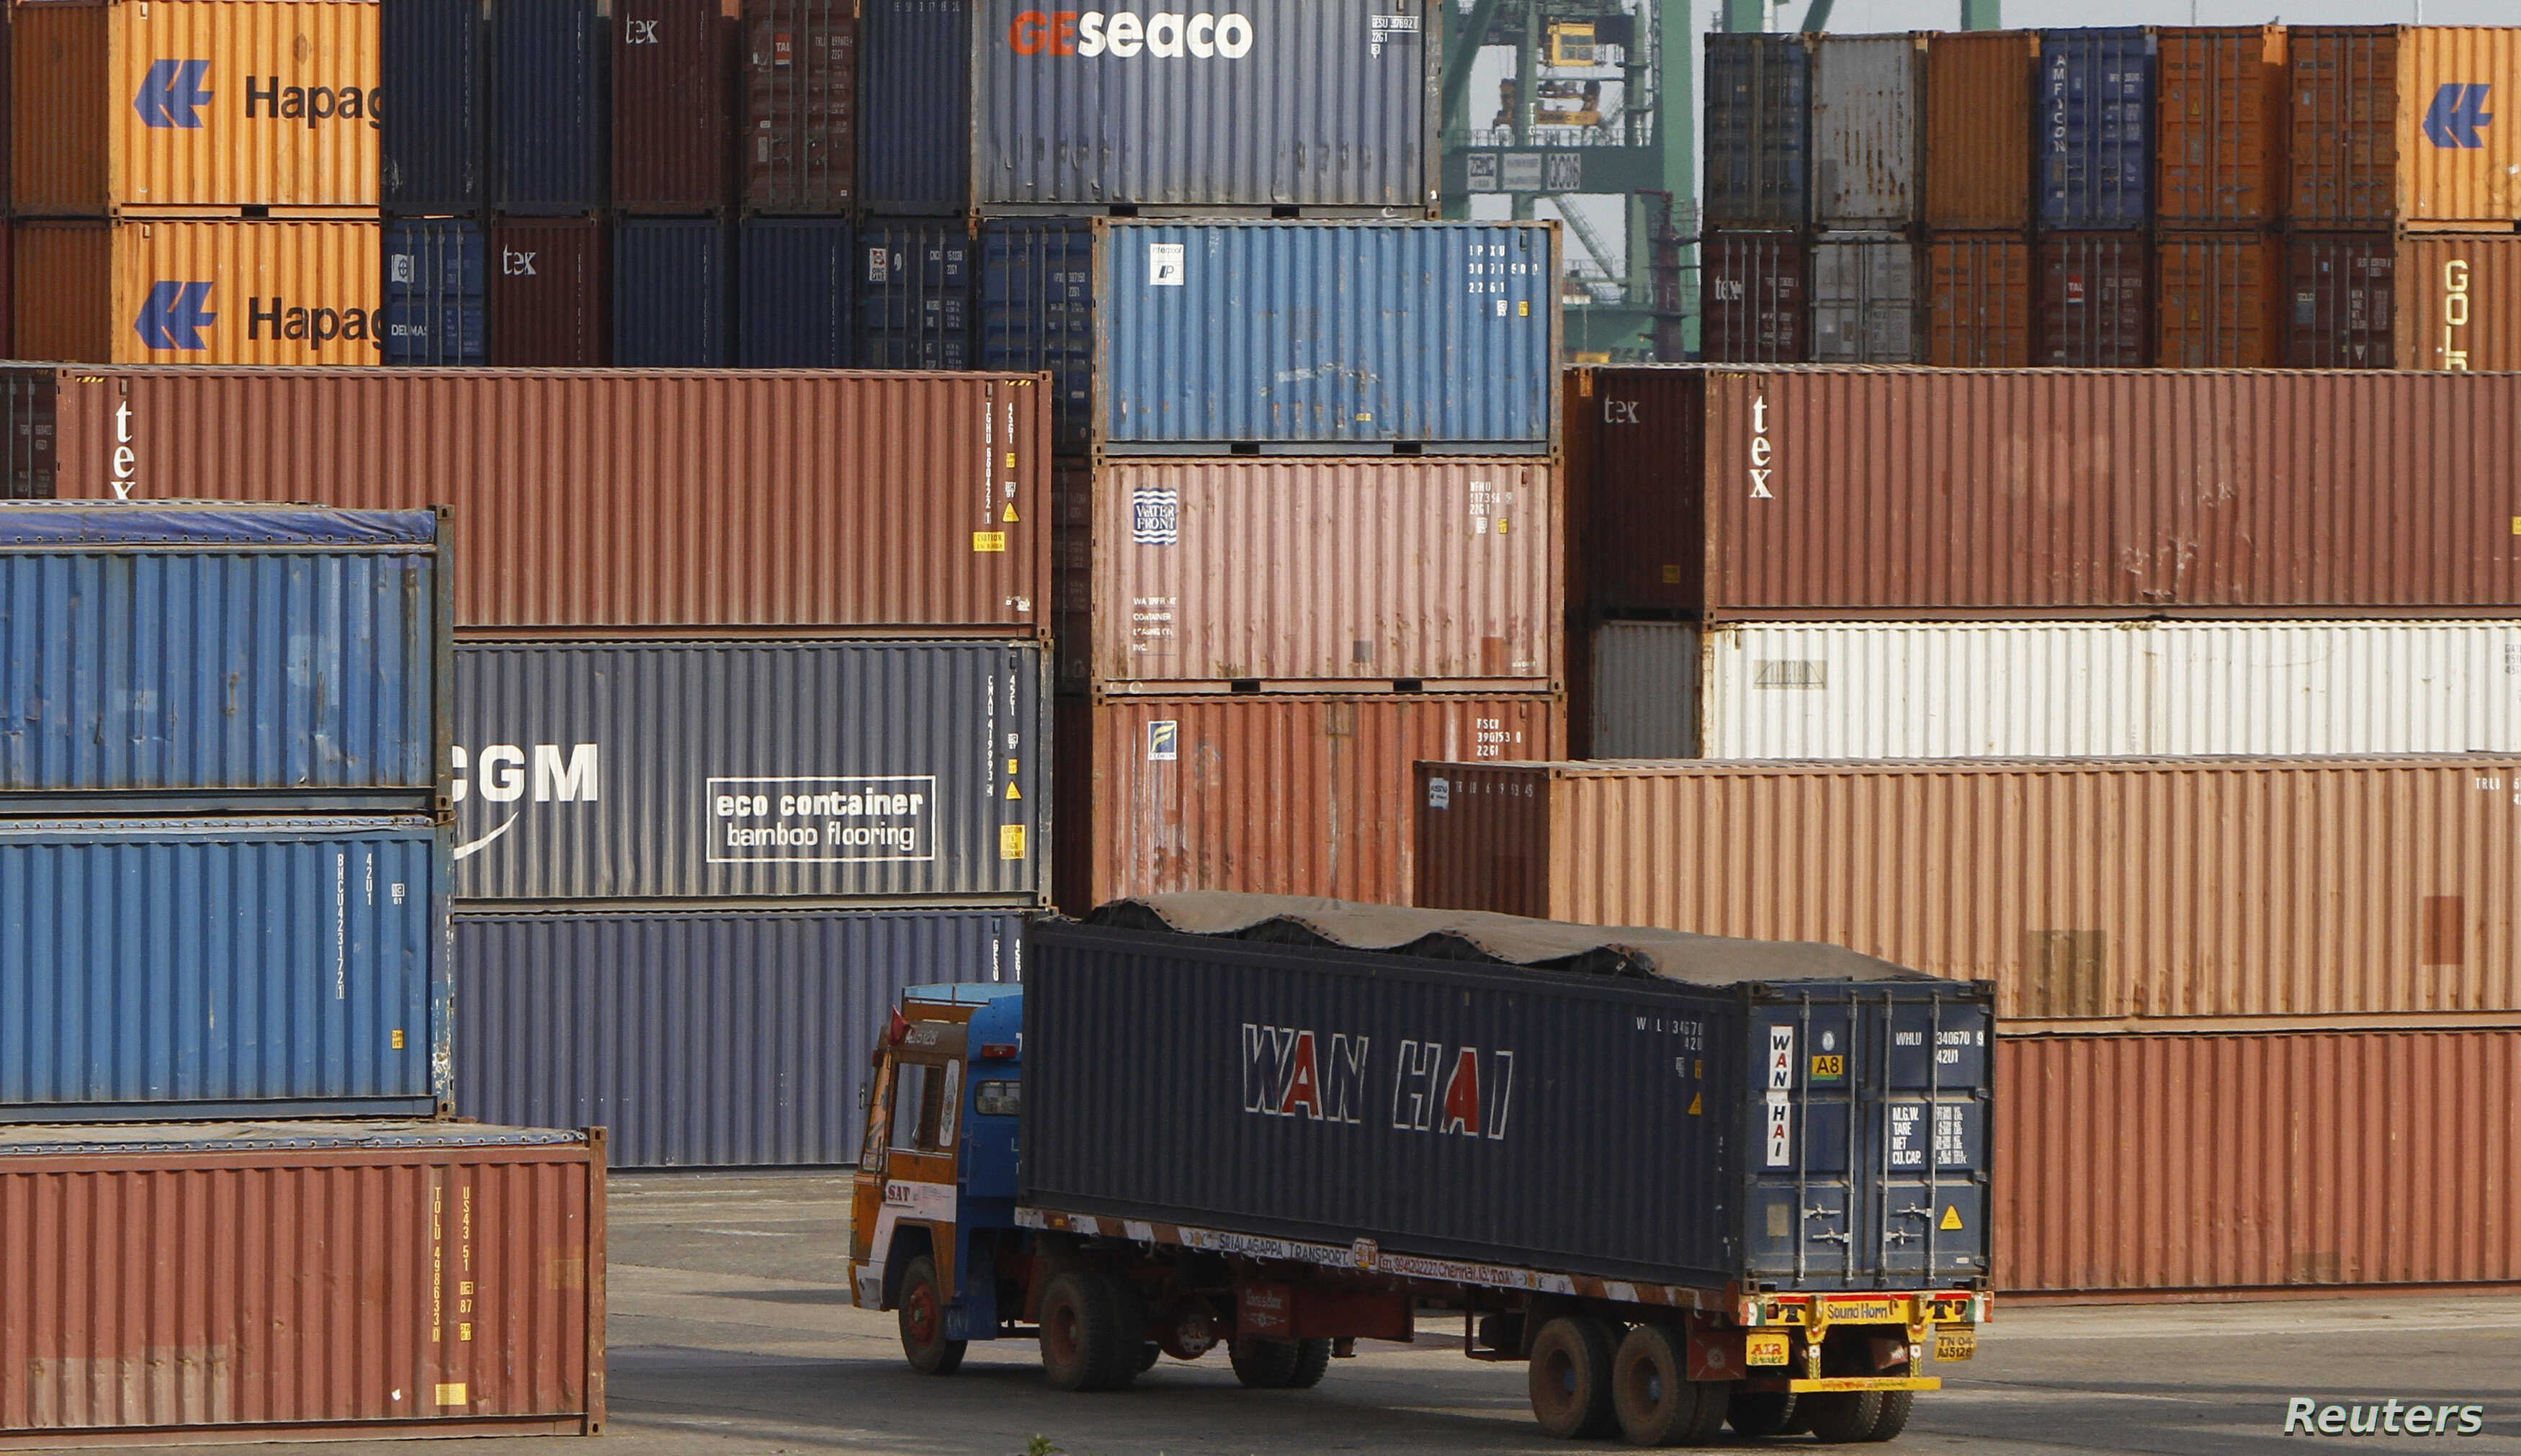 A truck ferries a shipping container at a port in the southern Indian city of Chennai, February 13, 2013.